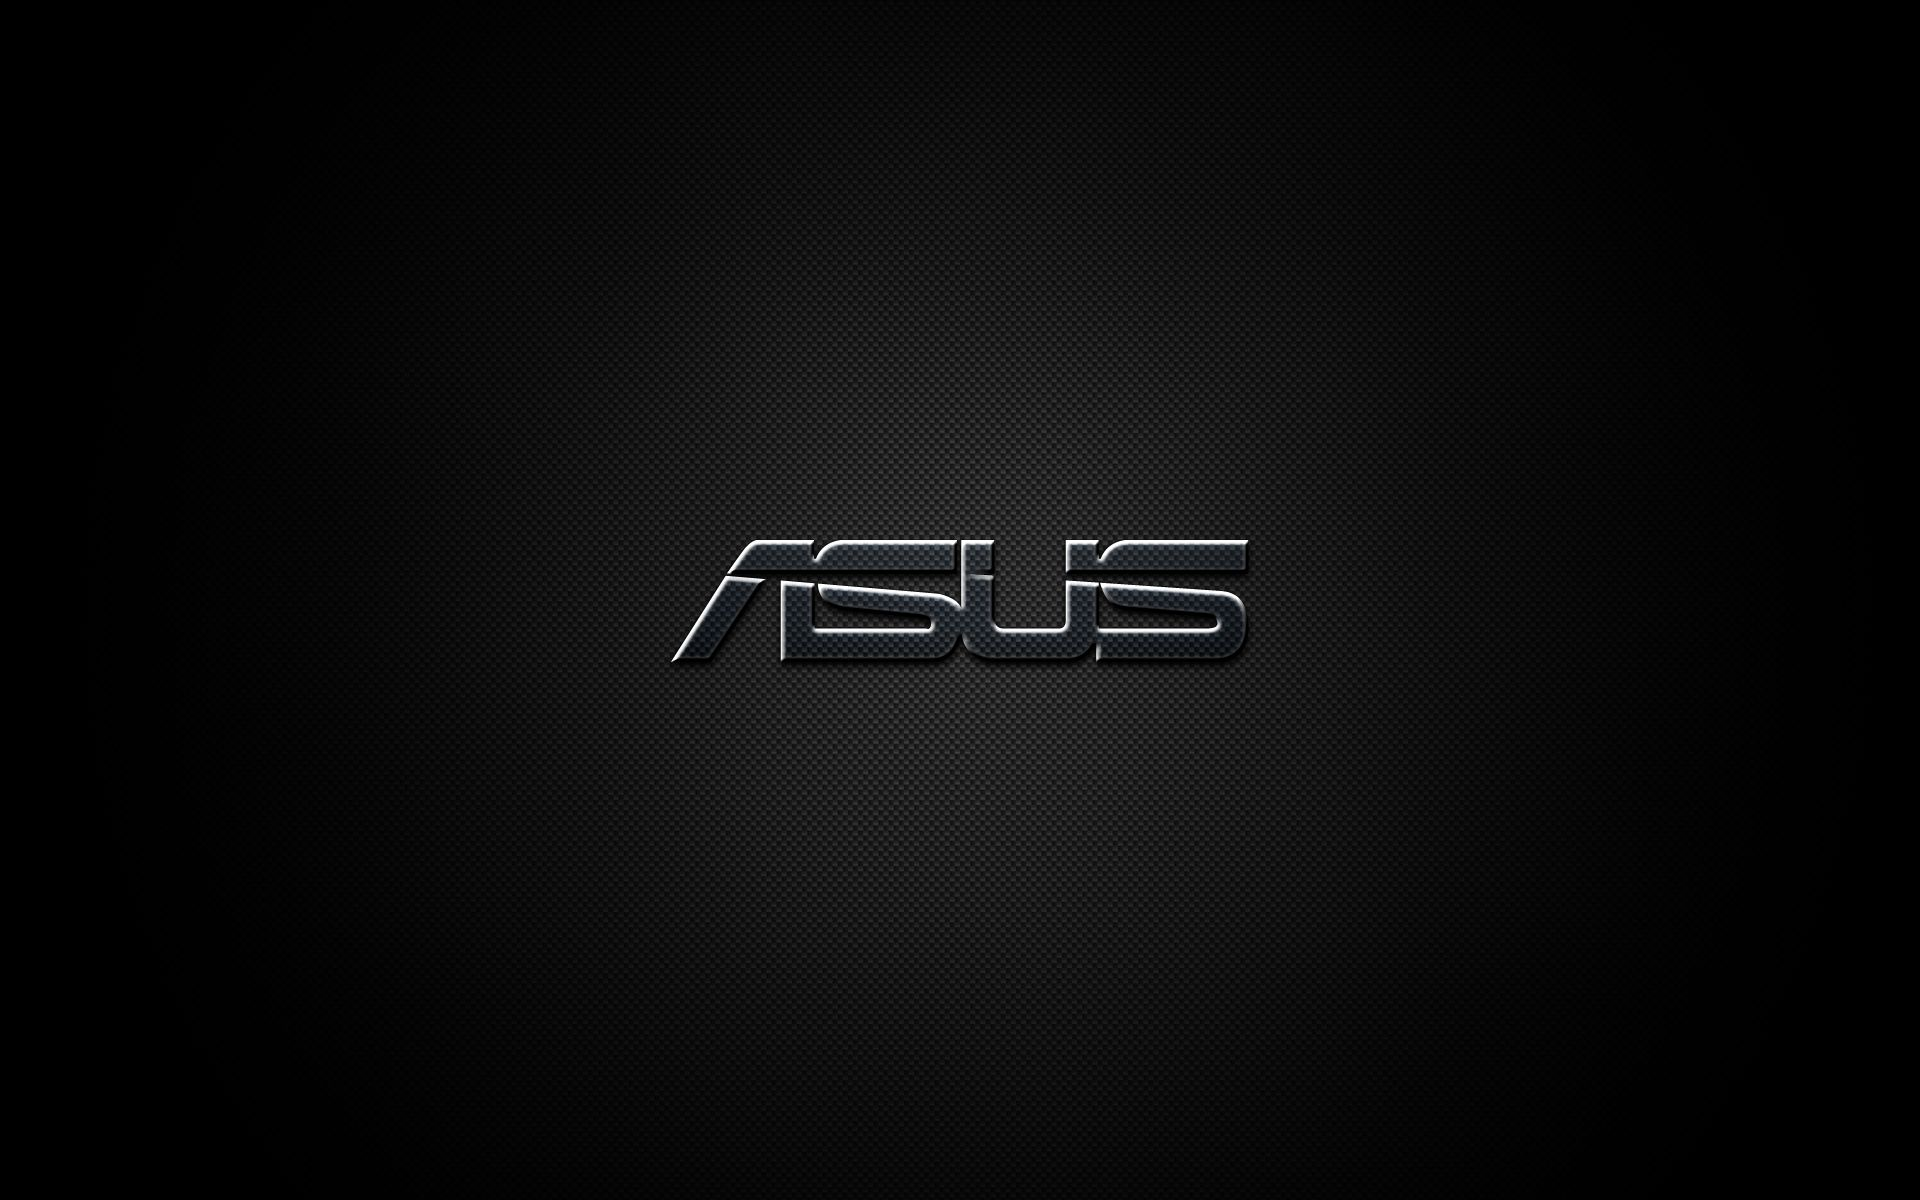 wallpapers for asus laptops | hd wallpapers | pinterest | hd